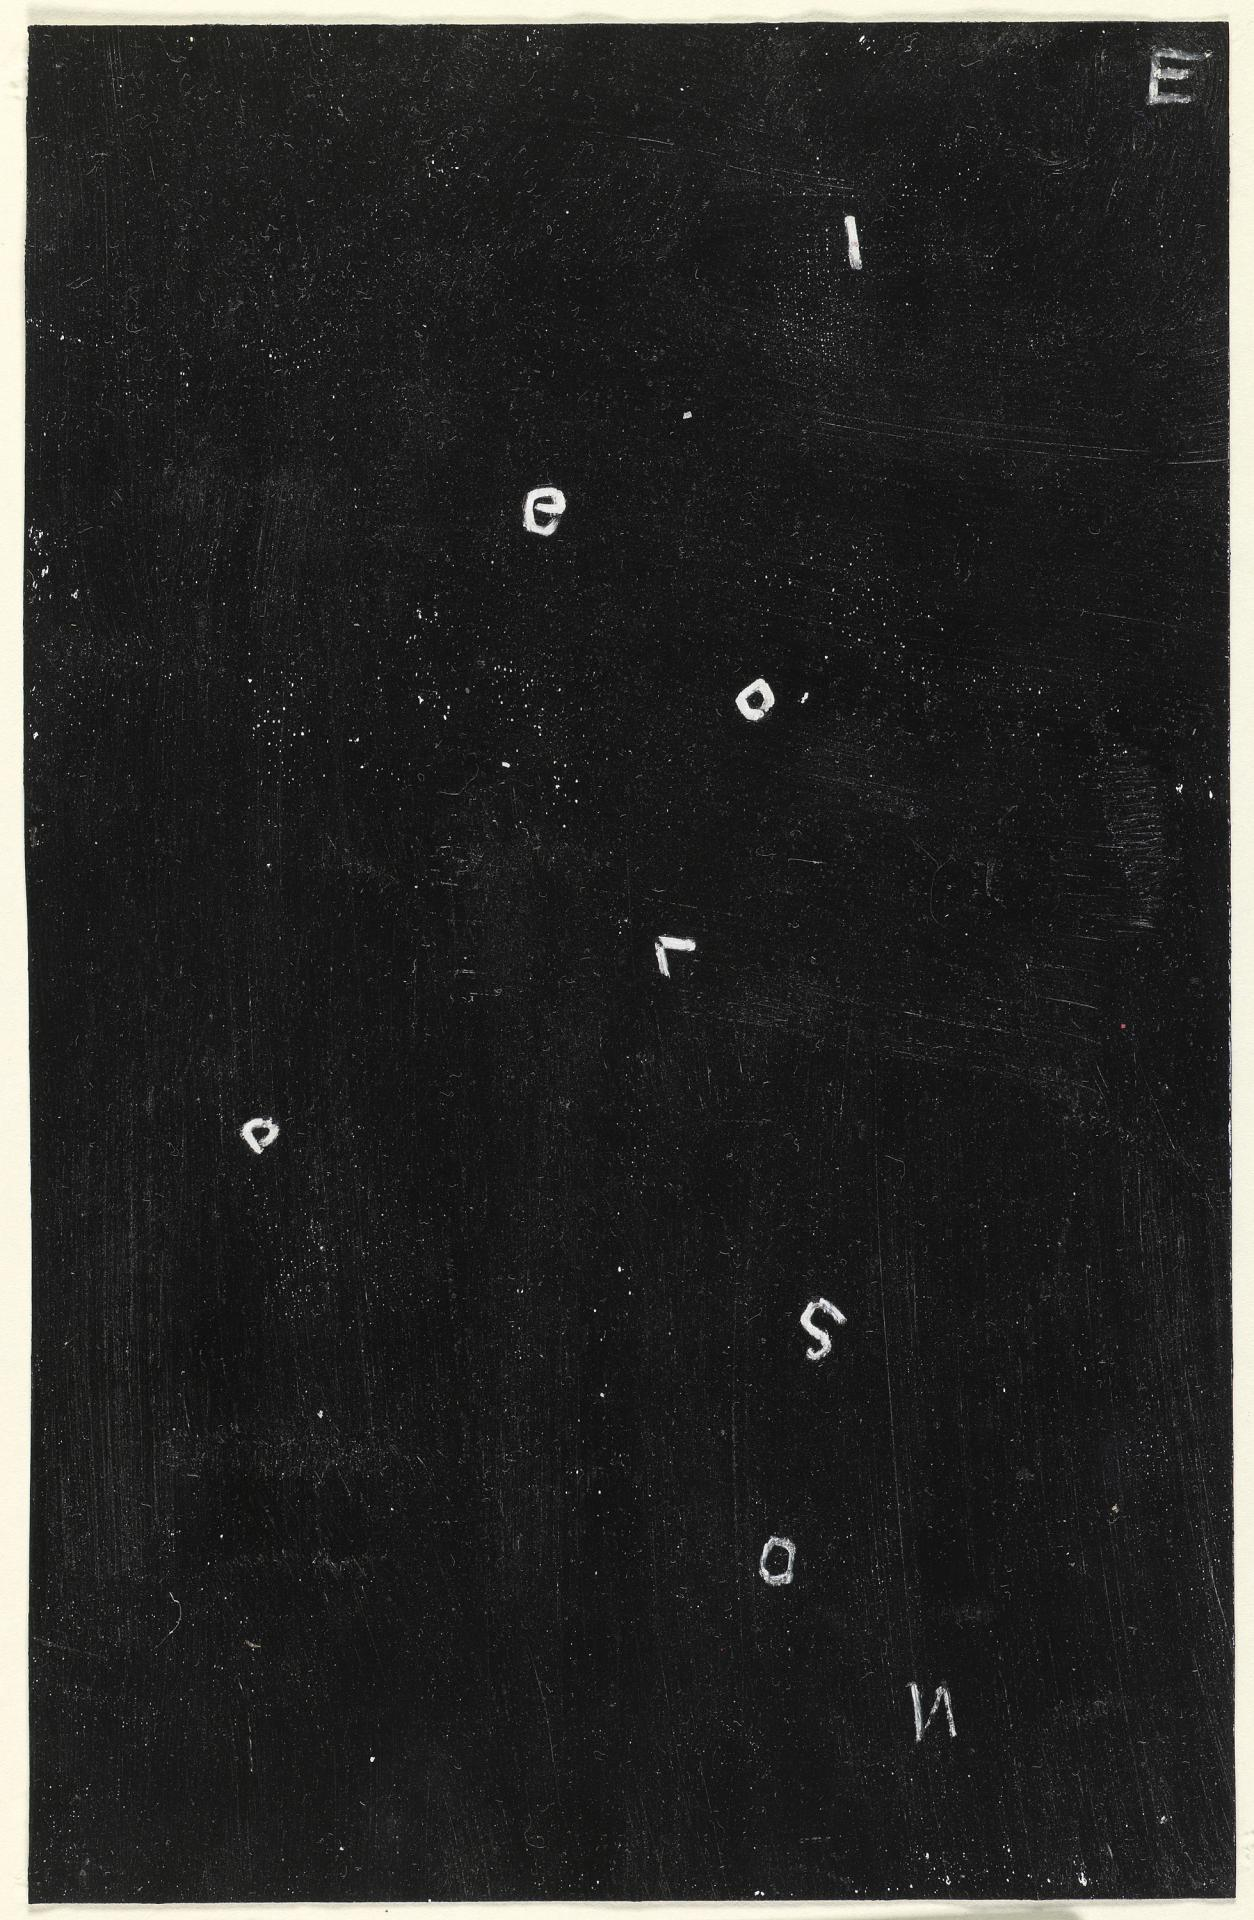 Untitled (white letters on black ground)